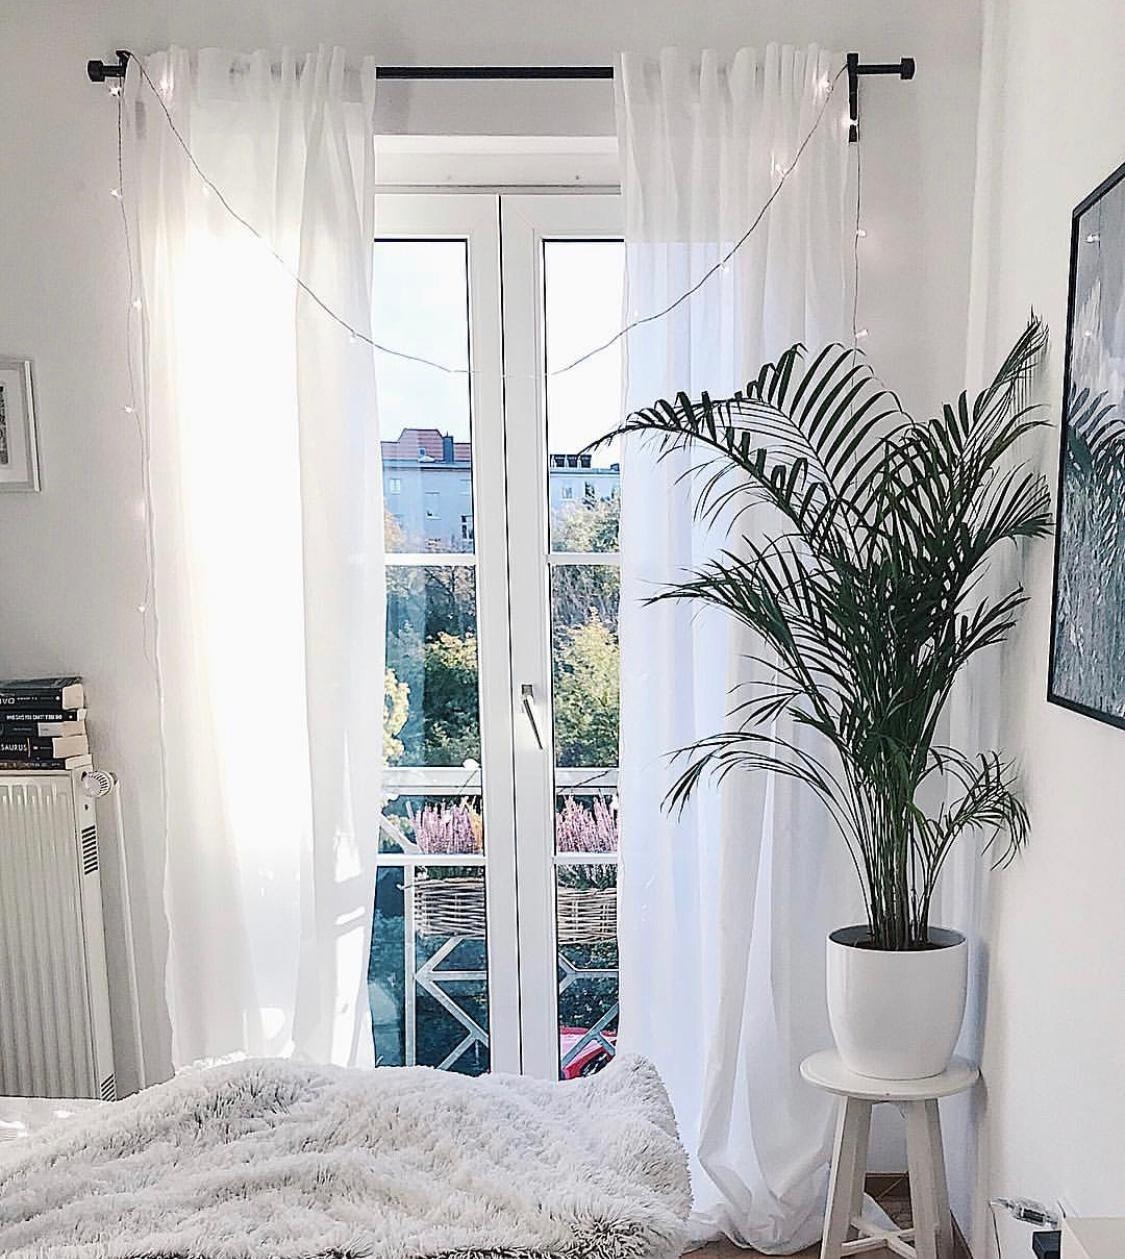 Mein wg zimmer in greifswald  student couchstyle couchmagazin schlafzimmer vorhang fenster palme  868b60cf de54 4610 b4fa 6a93543a5141